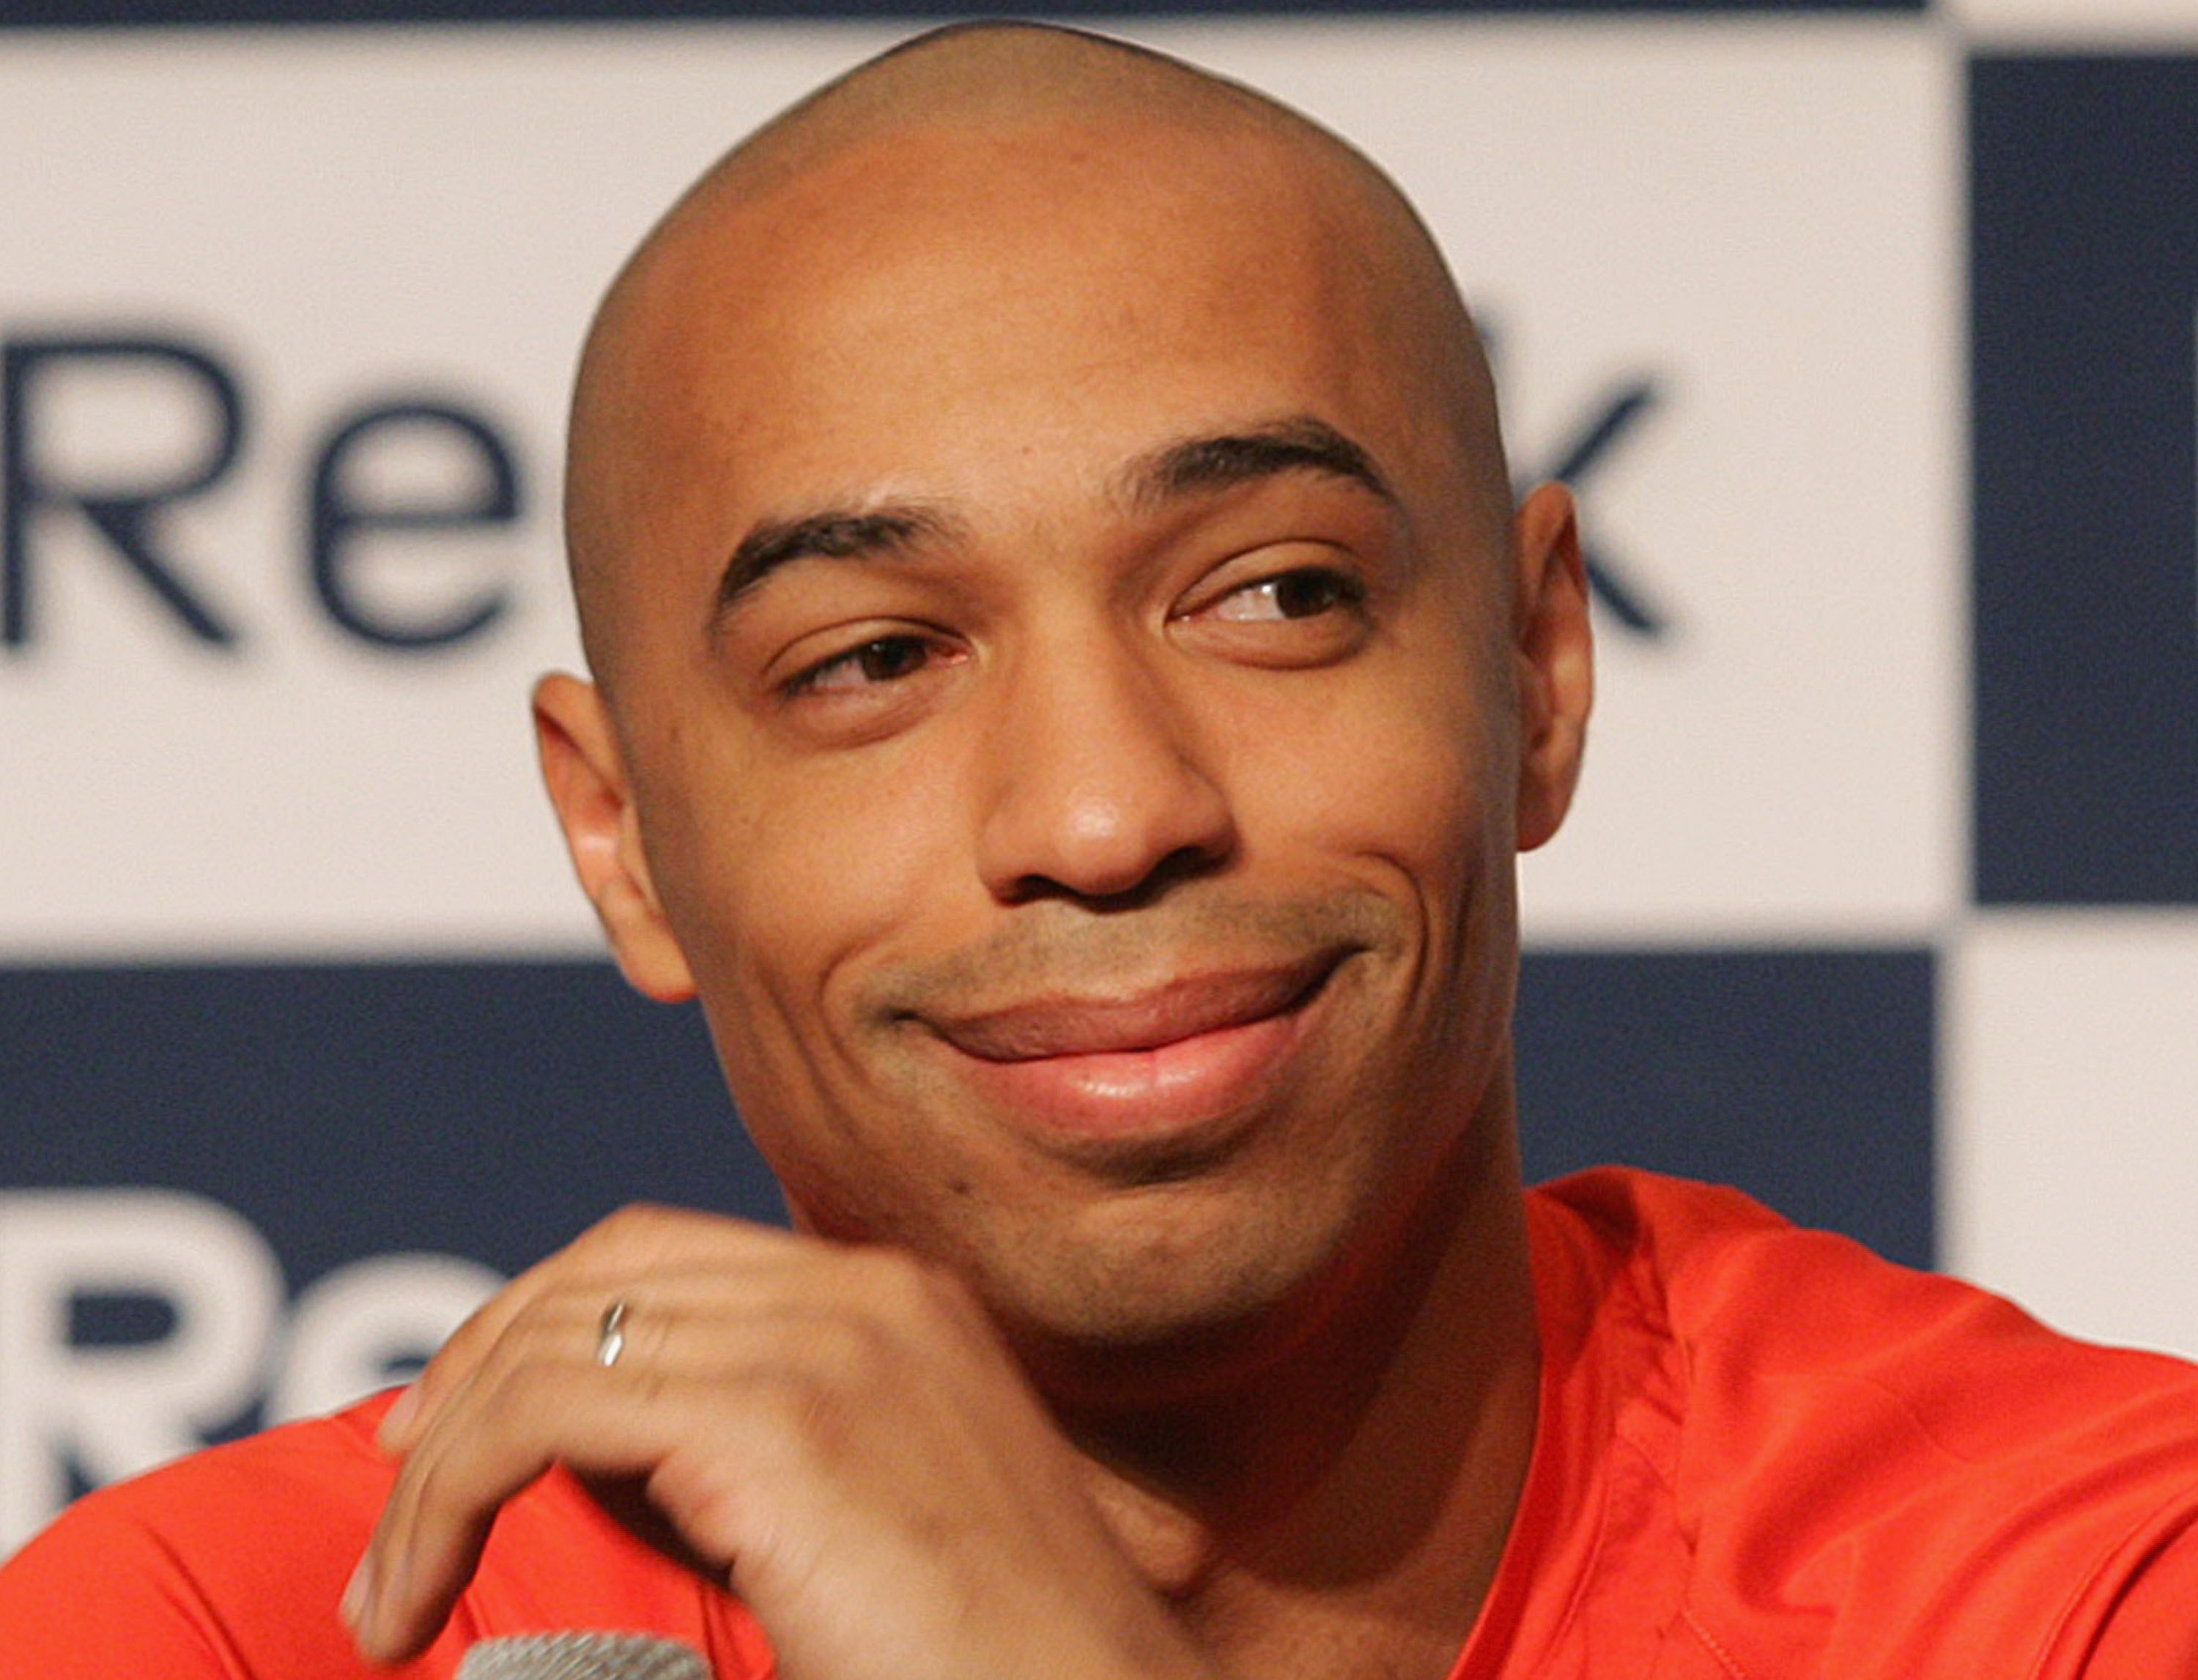 THE VOTE Thierry Henry godlike superstar or arrogant arse